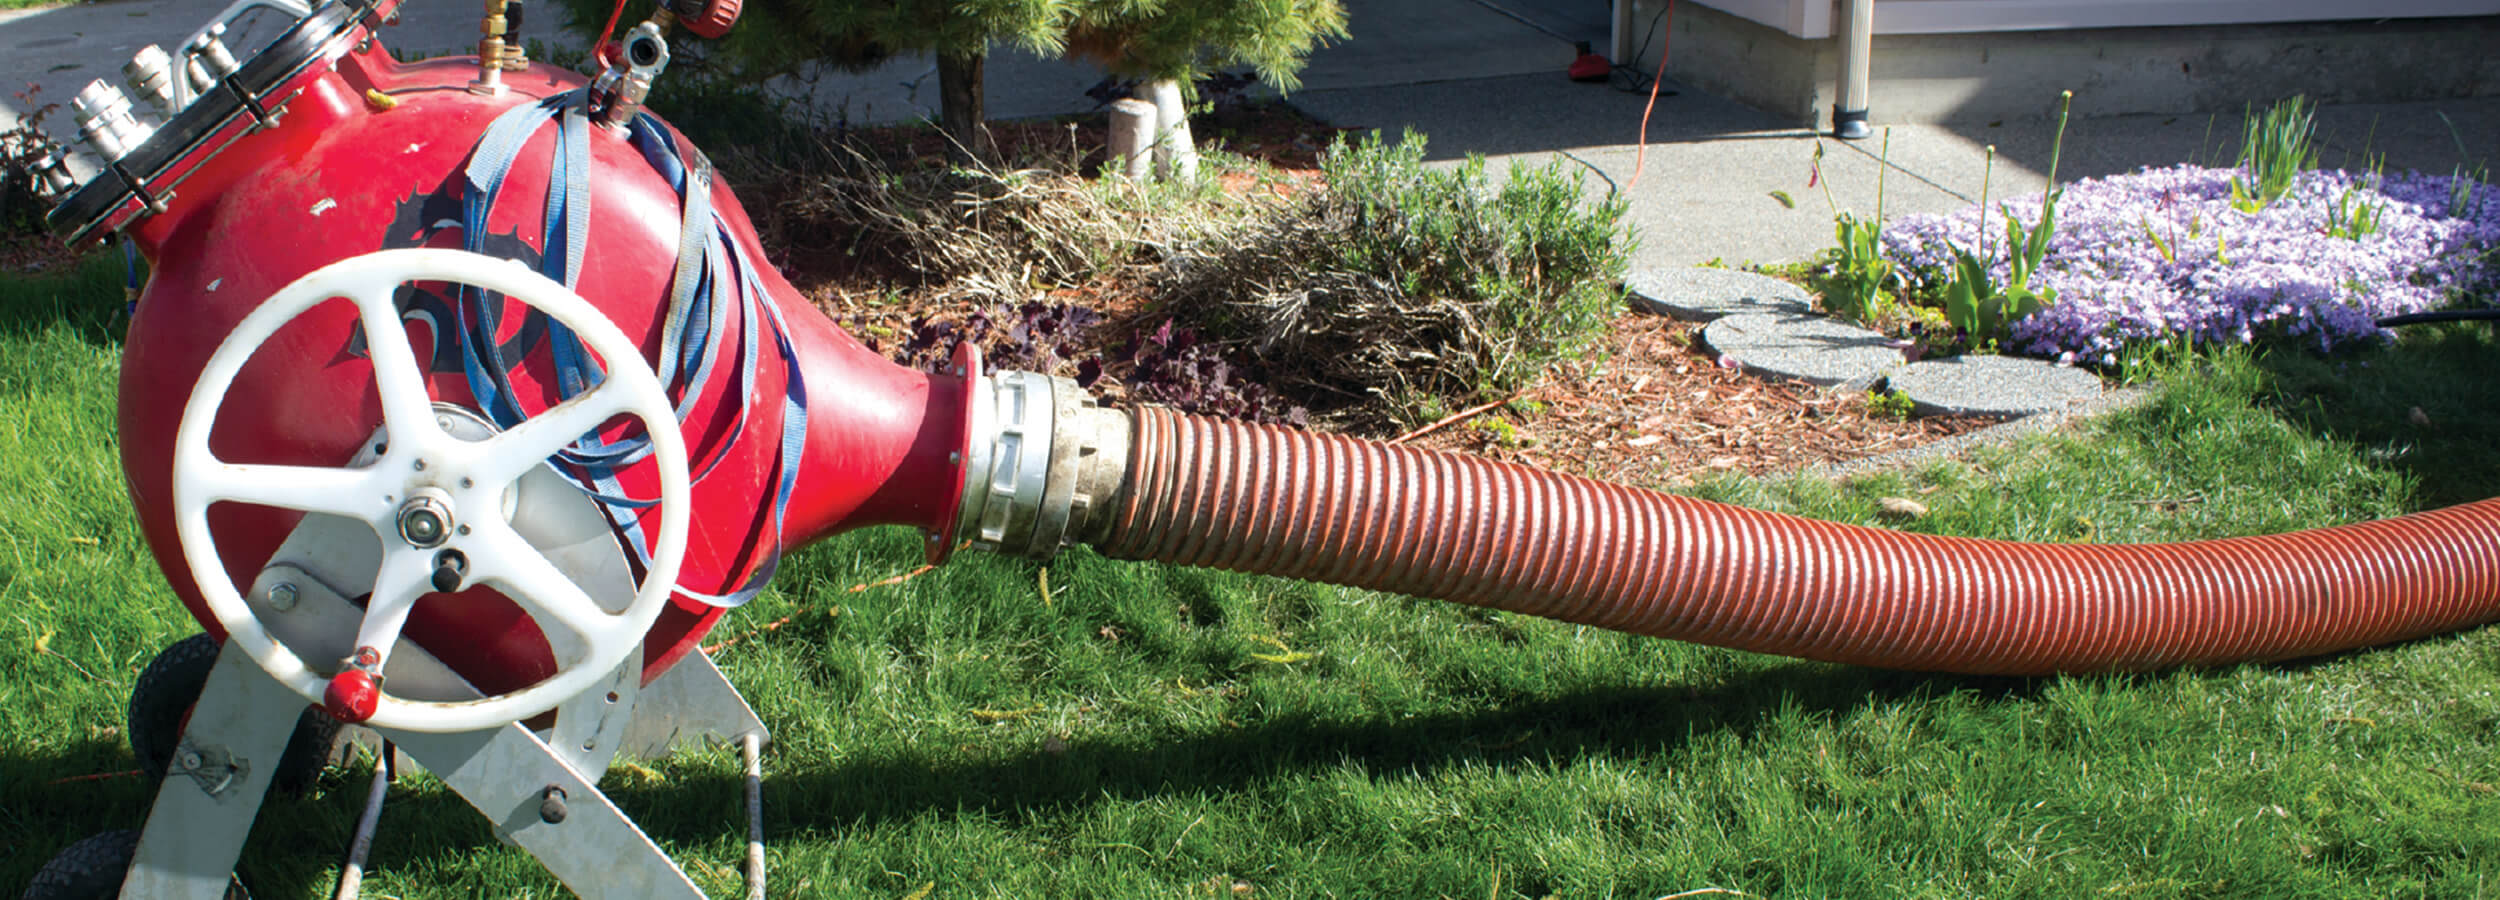 Freedom Plumbers Trenchless Sewer Line Repairs Virgina